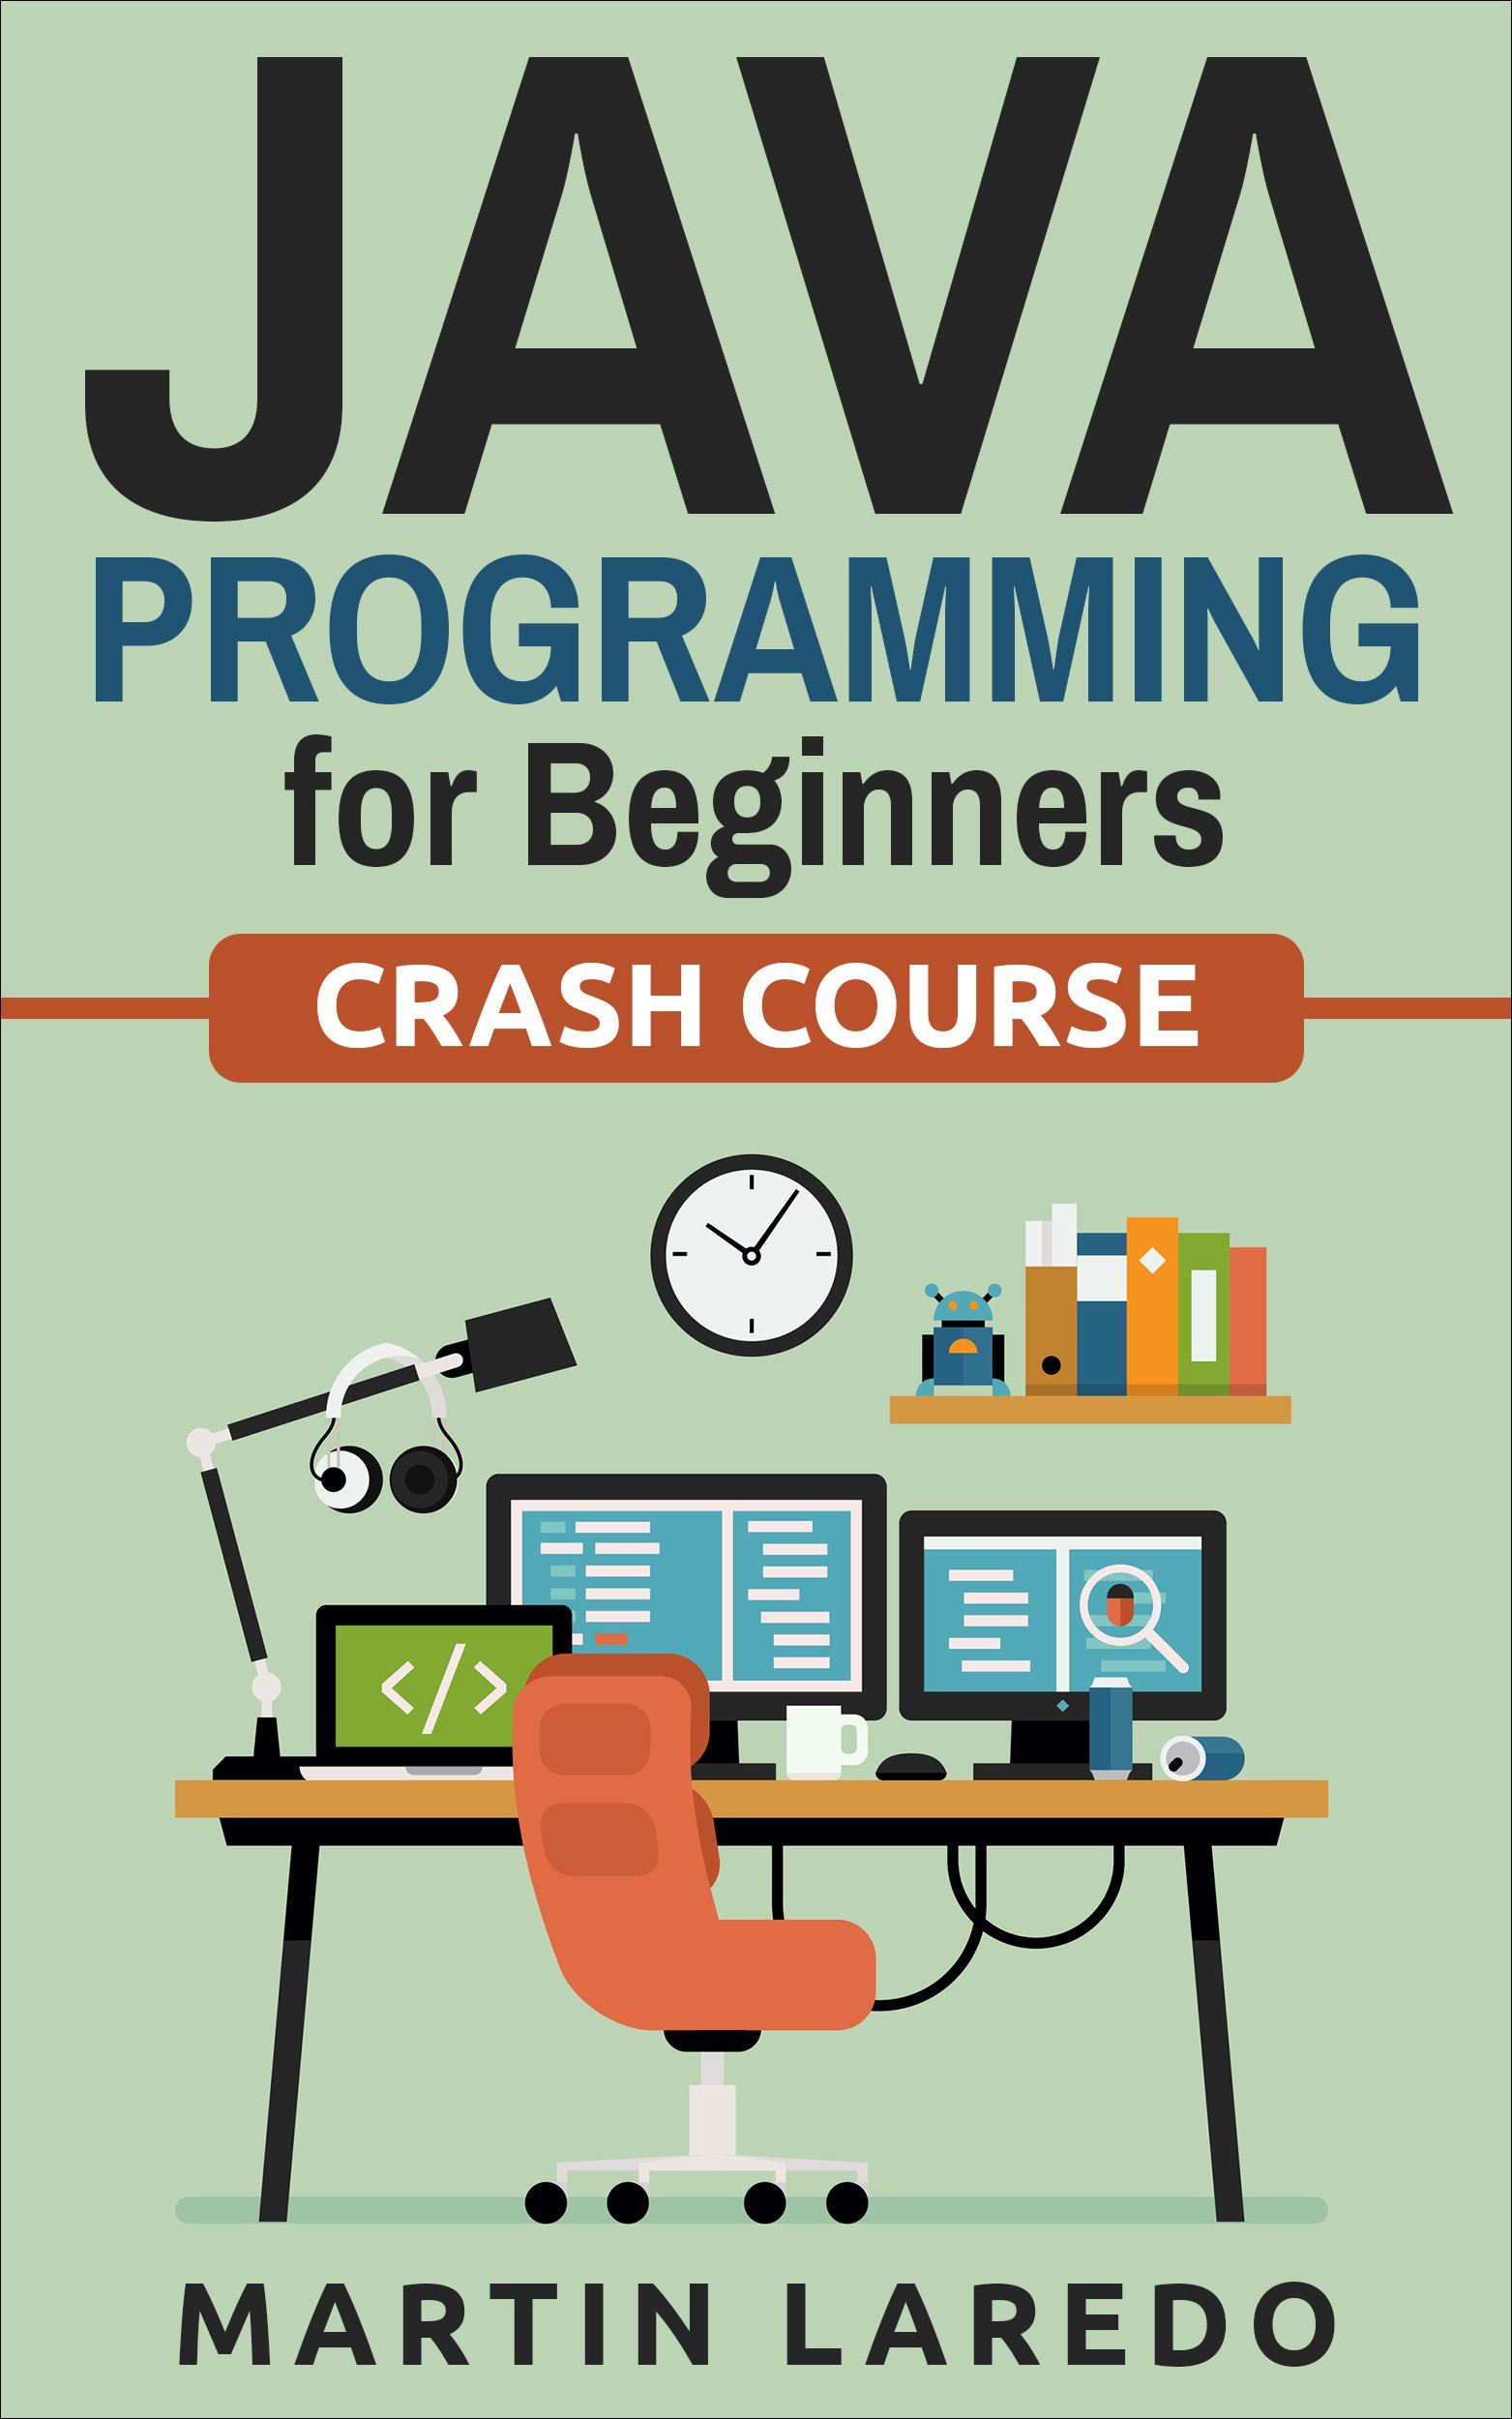 Java Programming For Beginners: Crash Course (Java, Python, C++, R, C) (Programming, Java Programming, C++ Programming, Python Programming, R Programming, C Programming, Book 1)